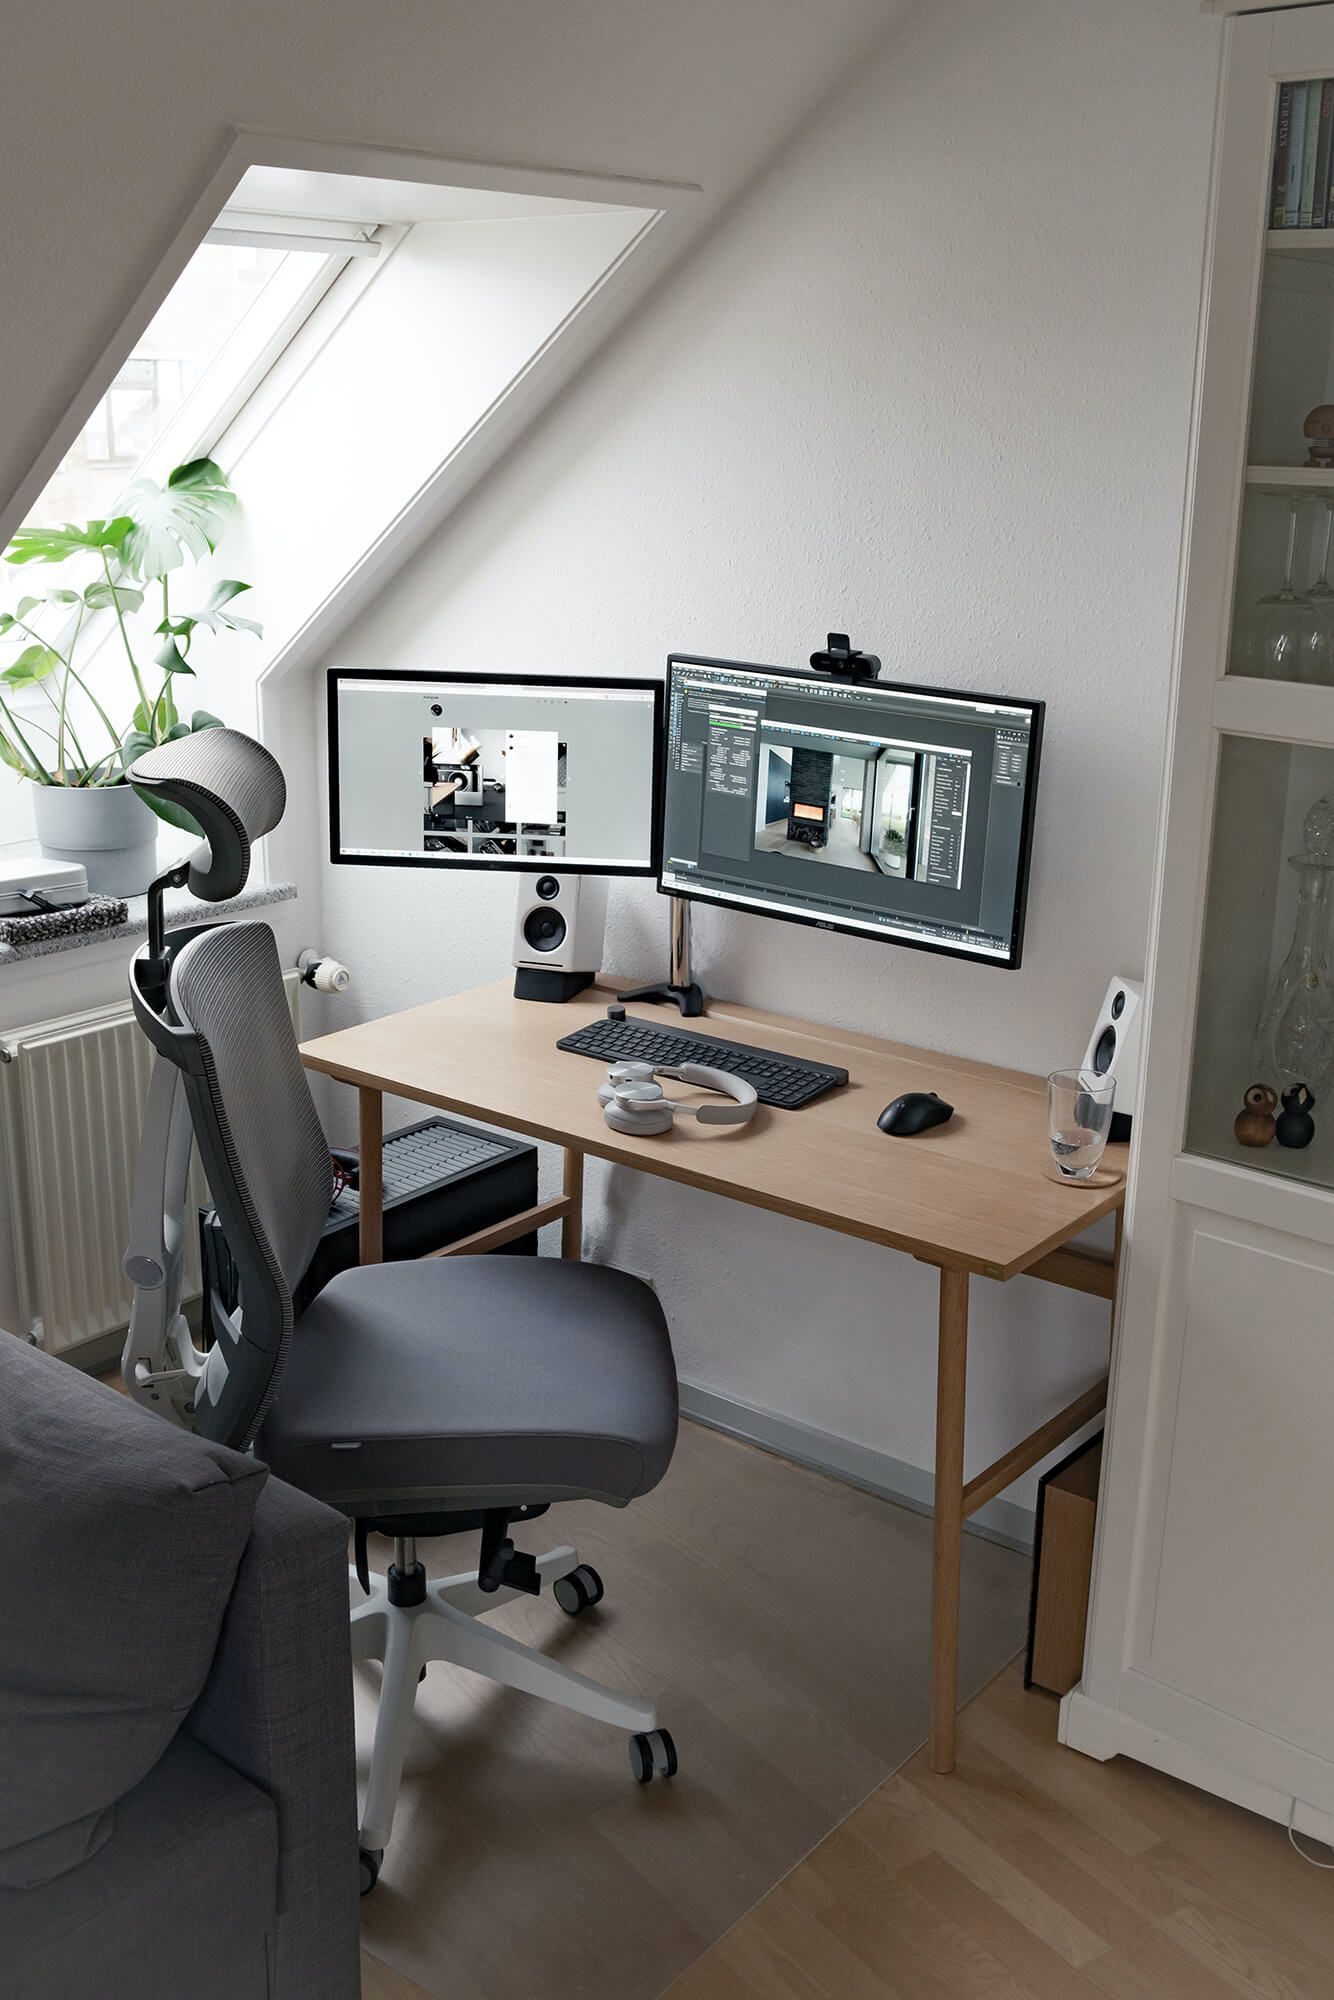 Natural light helps home office workers sleep better